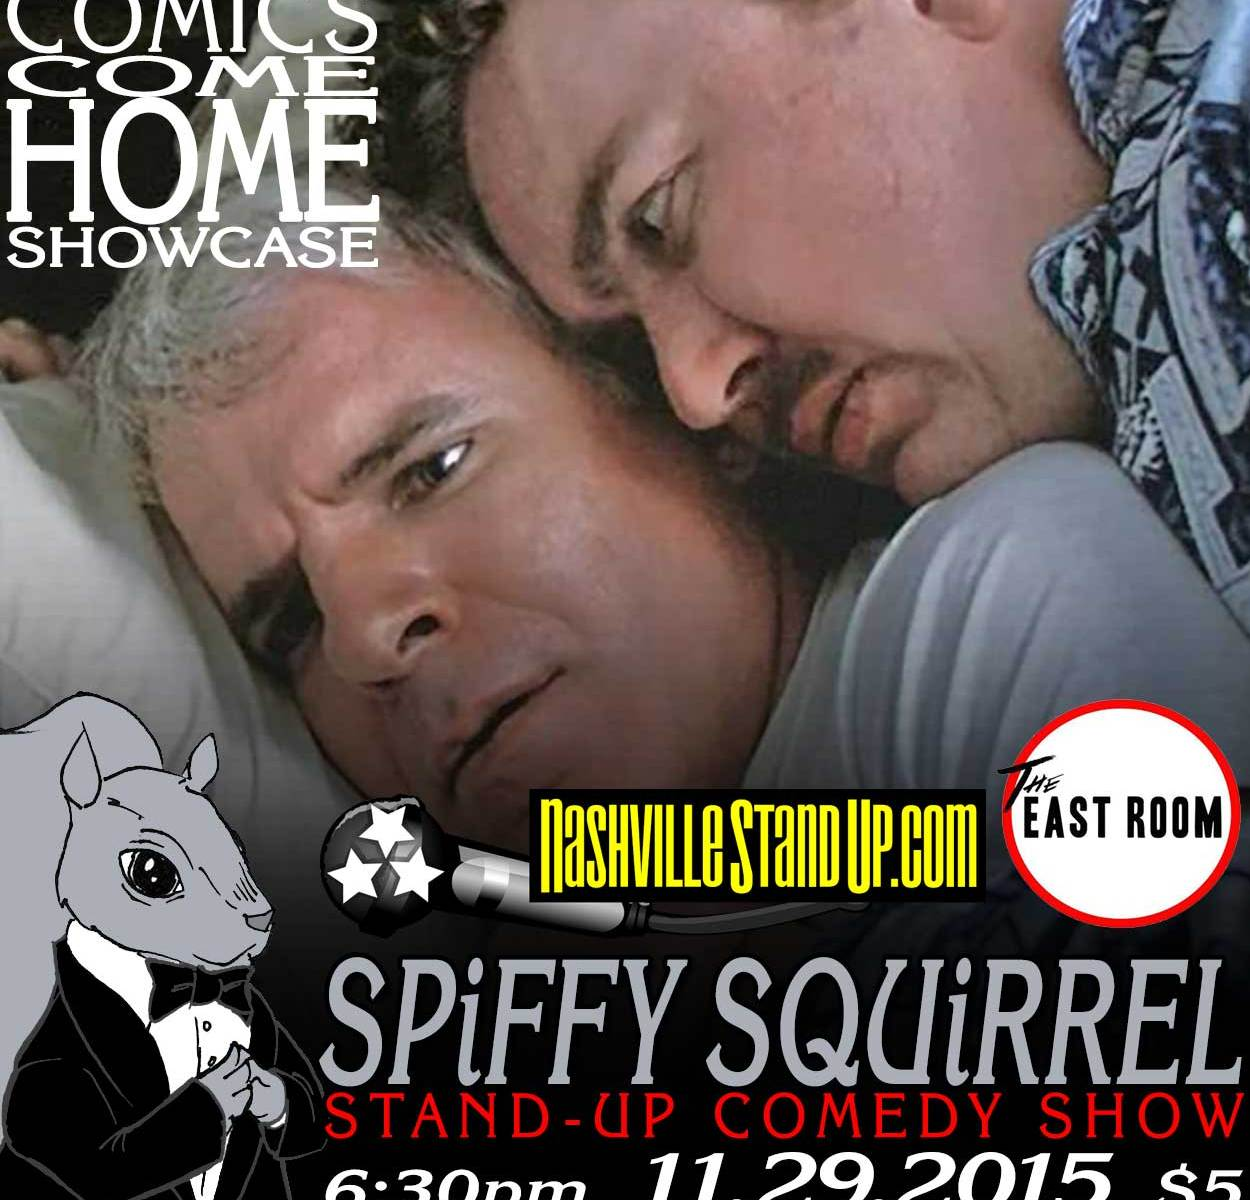 Comics Come Home Showcase at Spiffy Squirrel stand-up comedy show at The East Room 11/29/2015.